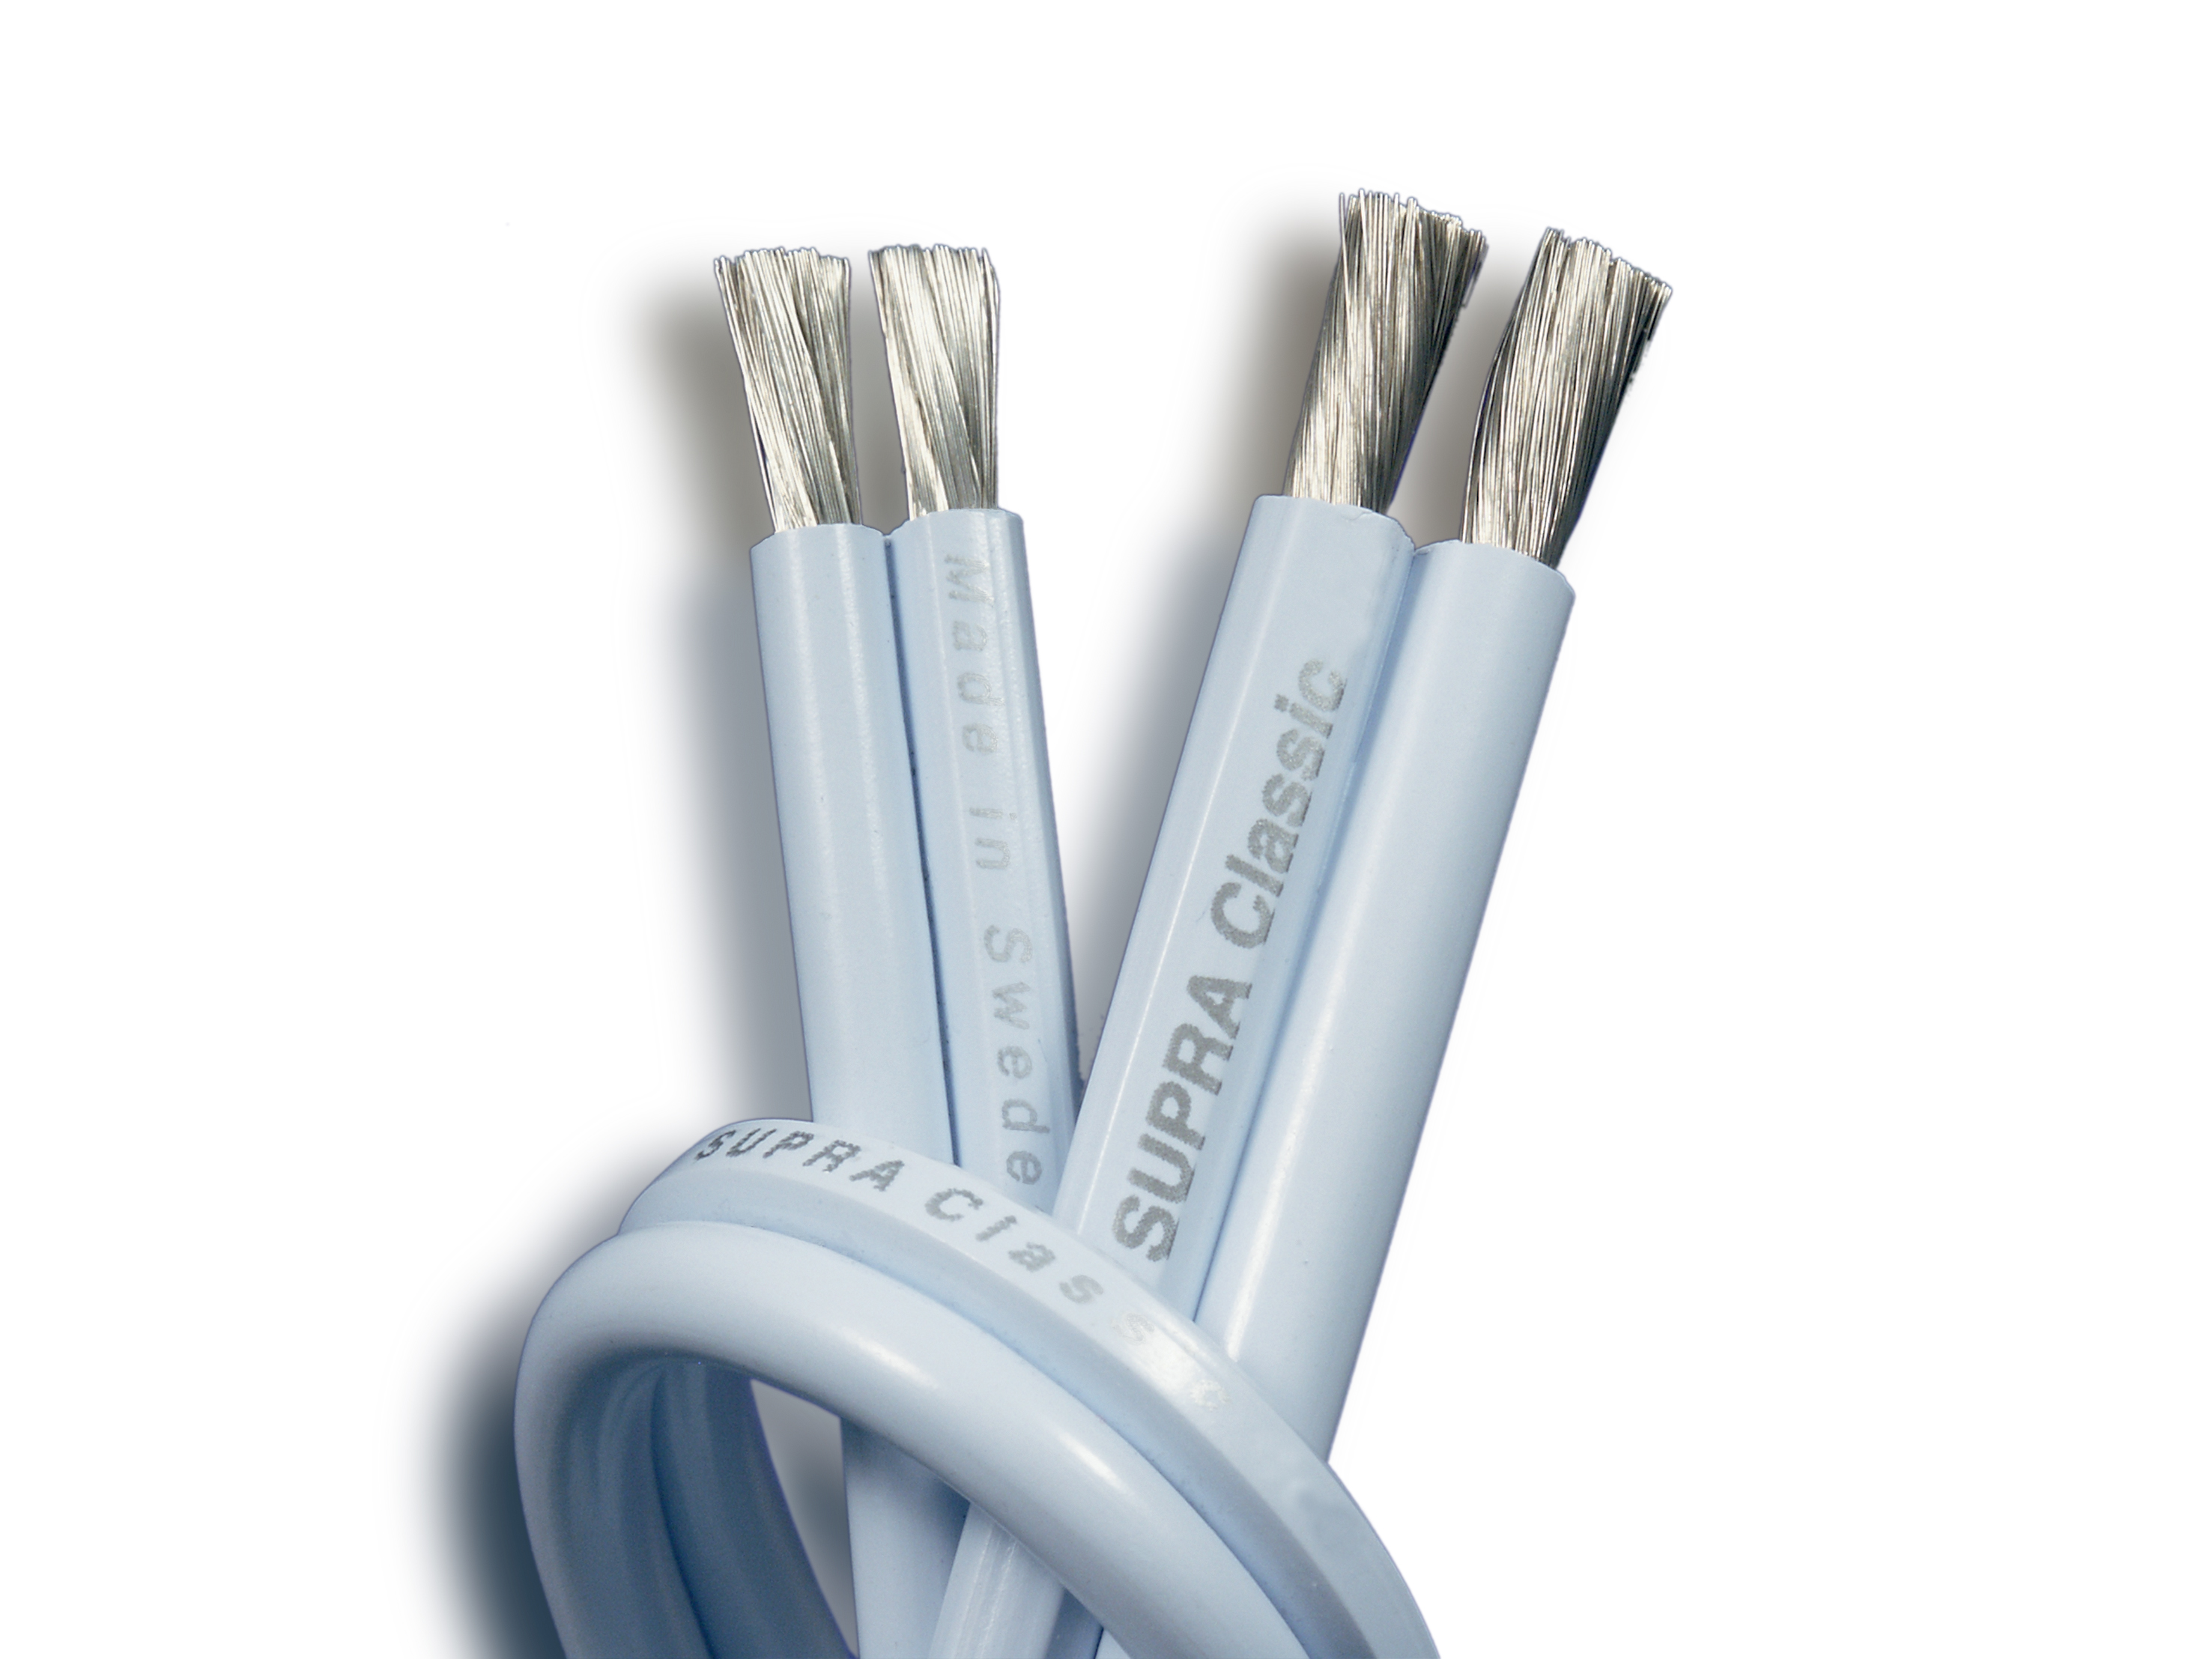 SUPRA Cables - Experience High Quality HDMI, DVI and HI-FI Cables ...